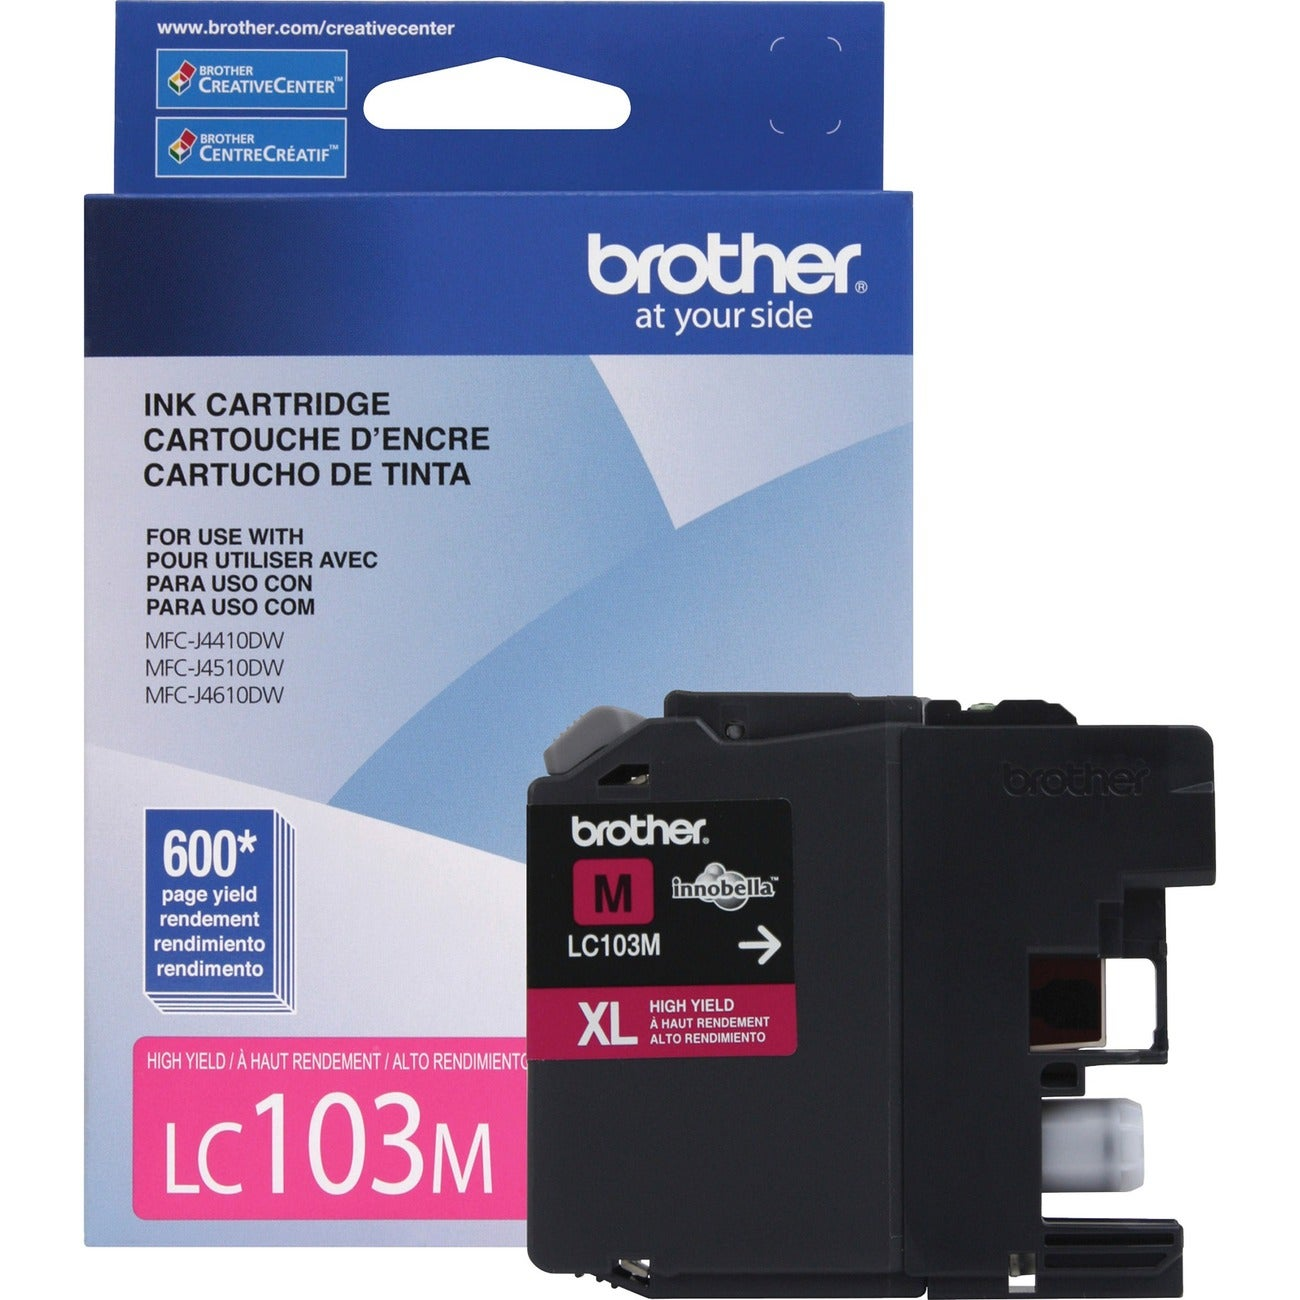 Brother Innobella LC103M Ink Cartridge - Magenta - Thumbnail 0